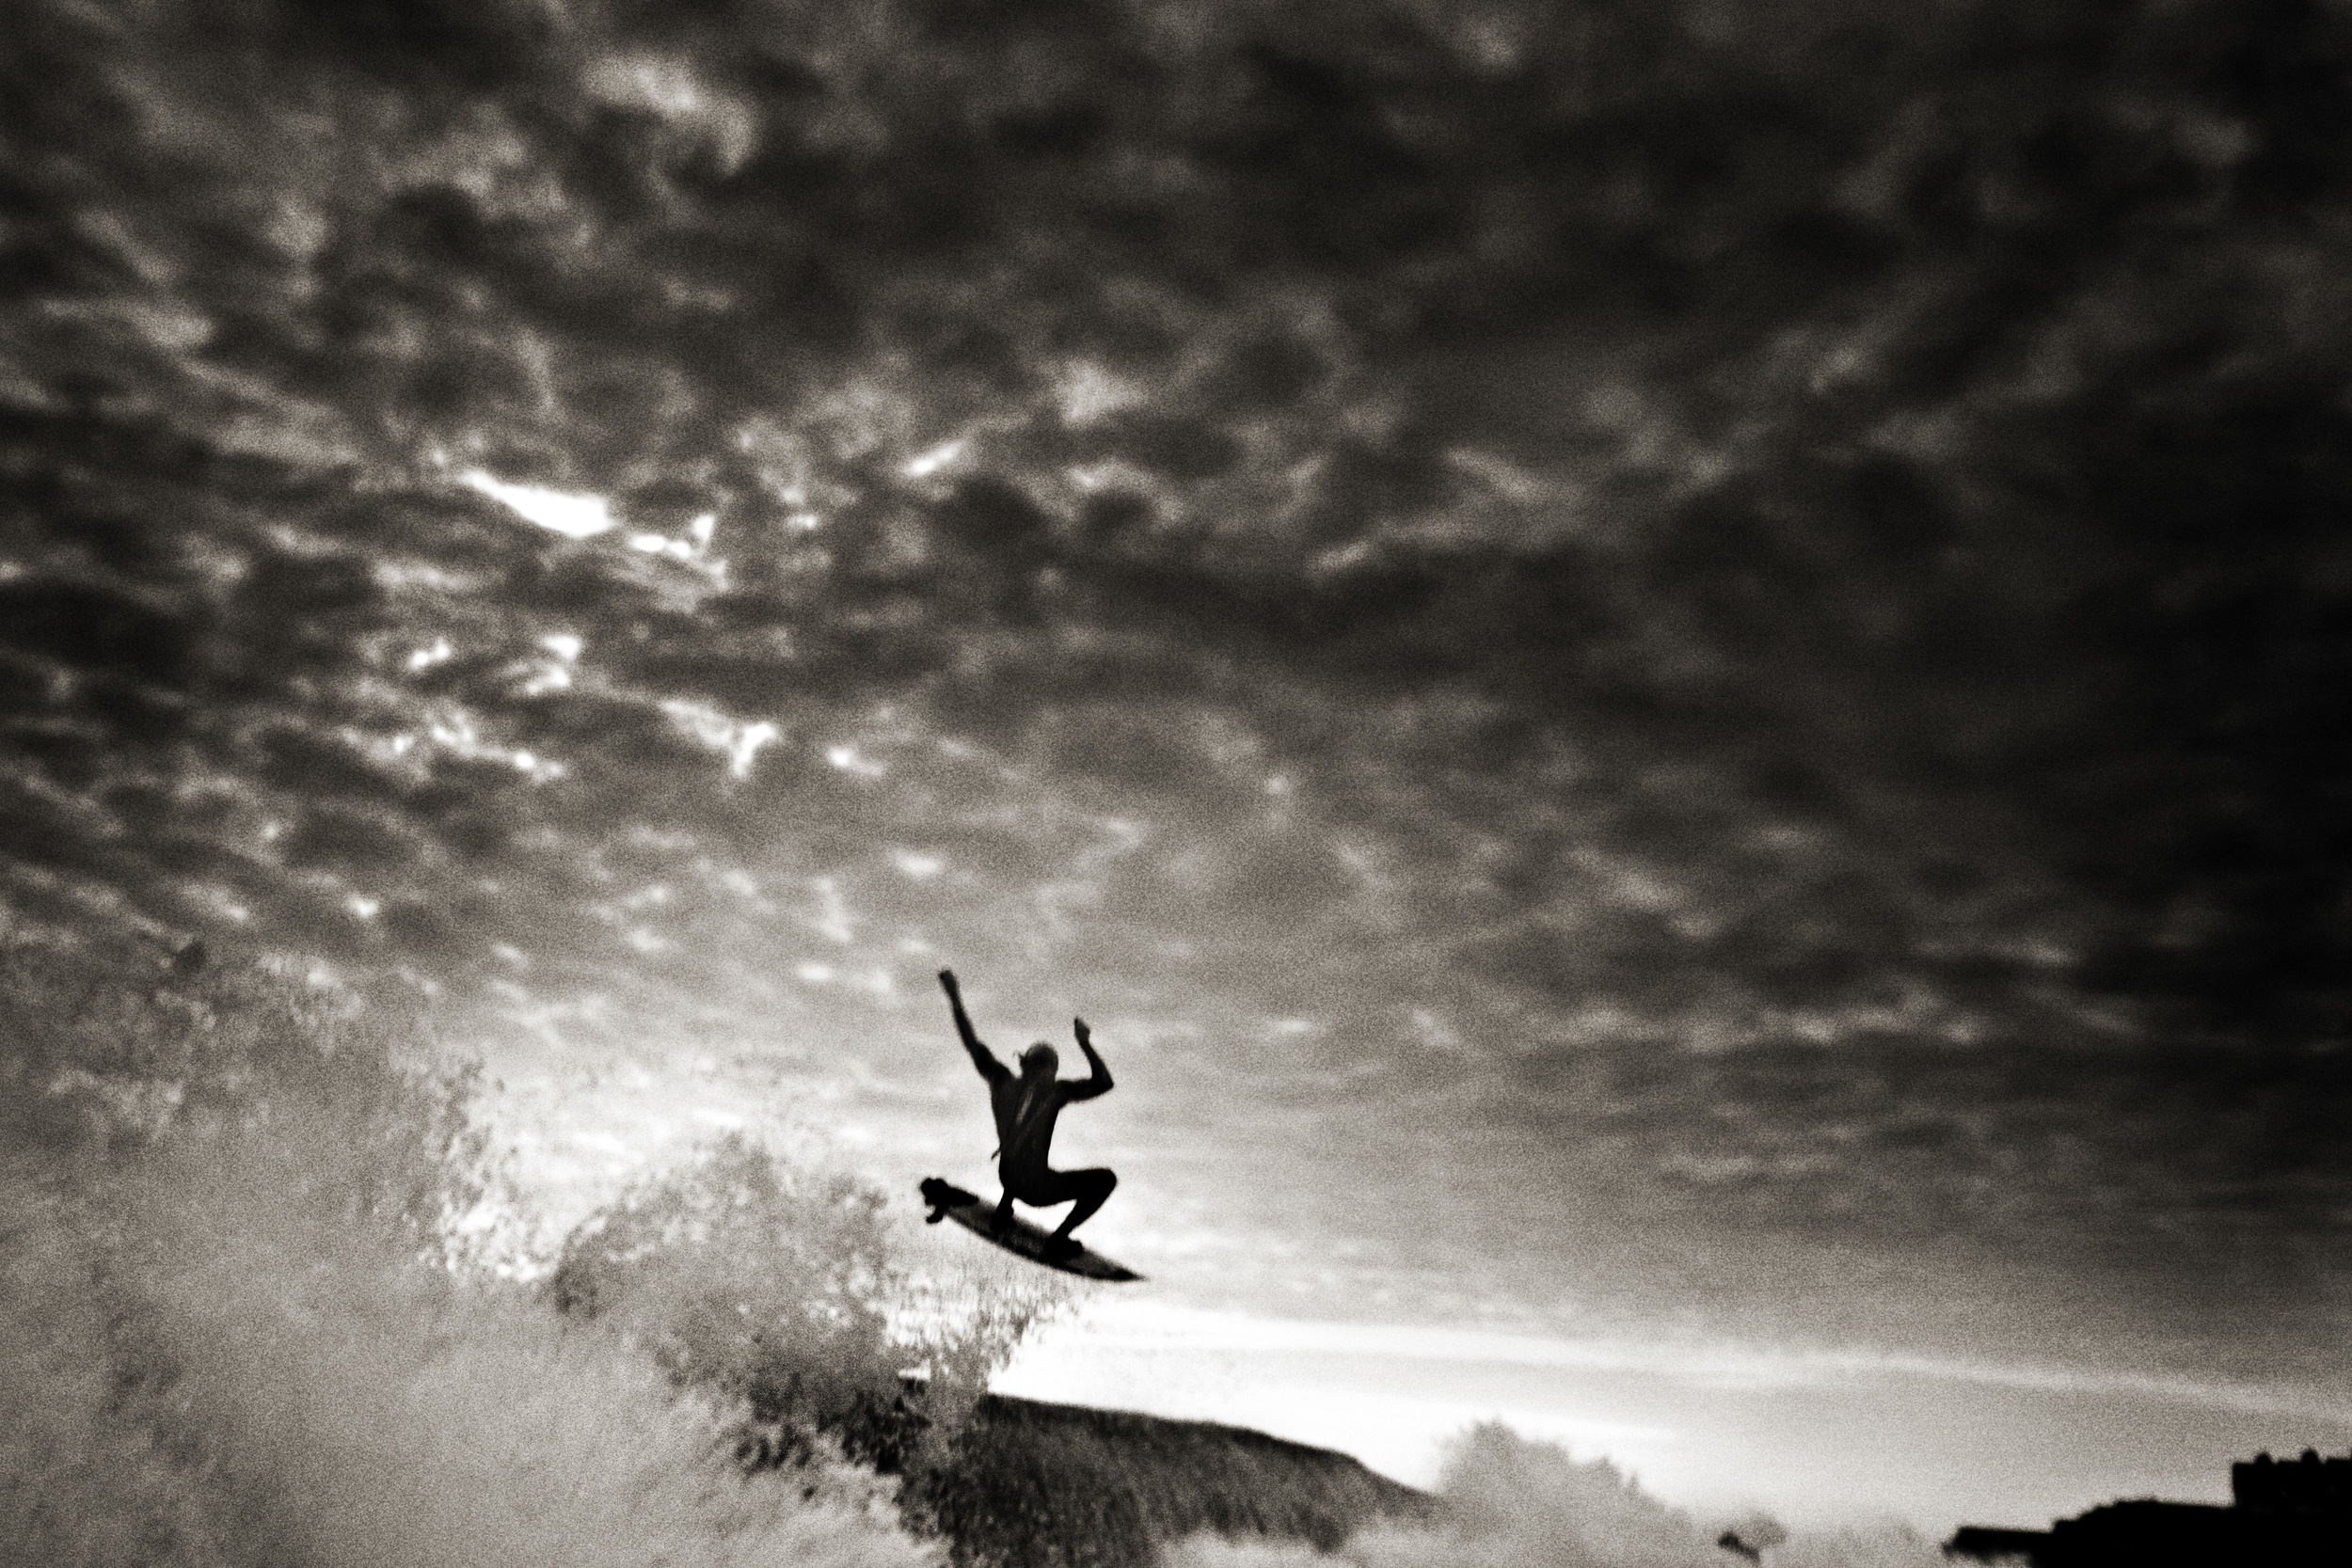 Jesse takes flight under a mackerel sky. This was one of the showcase images in After the Storm, the original project that spawned Legends of the Sandbar. photo Chris Bickford